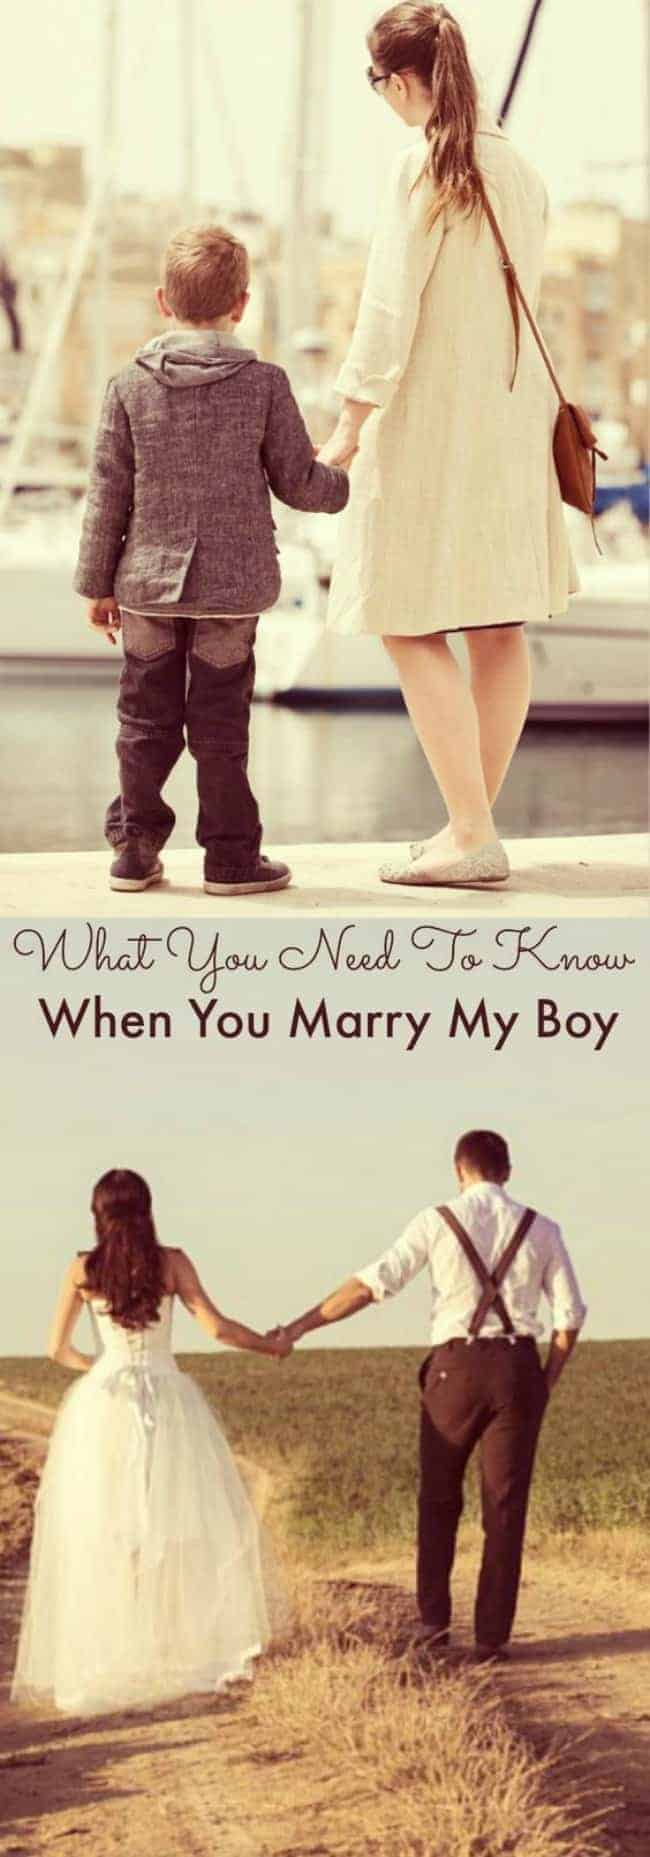 What You Need To Know When You Marry My Baby Boy